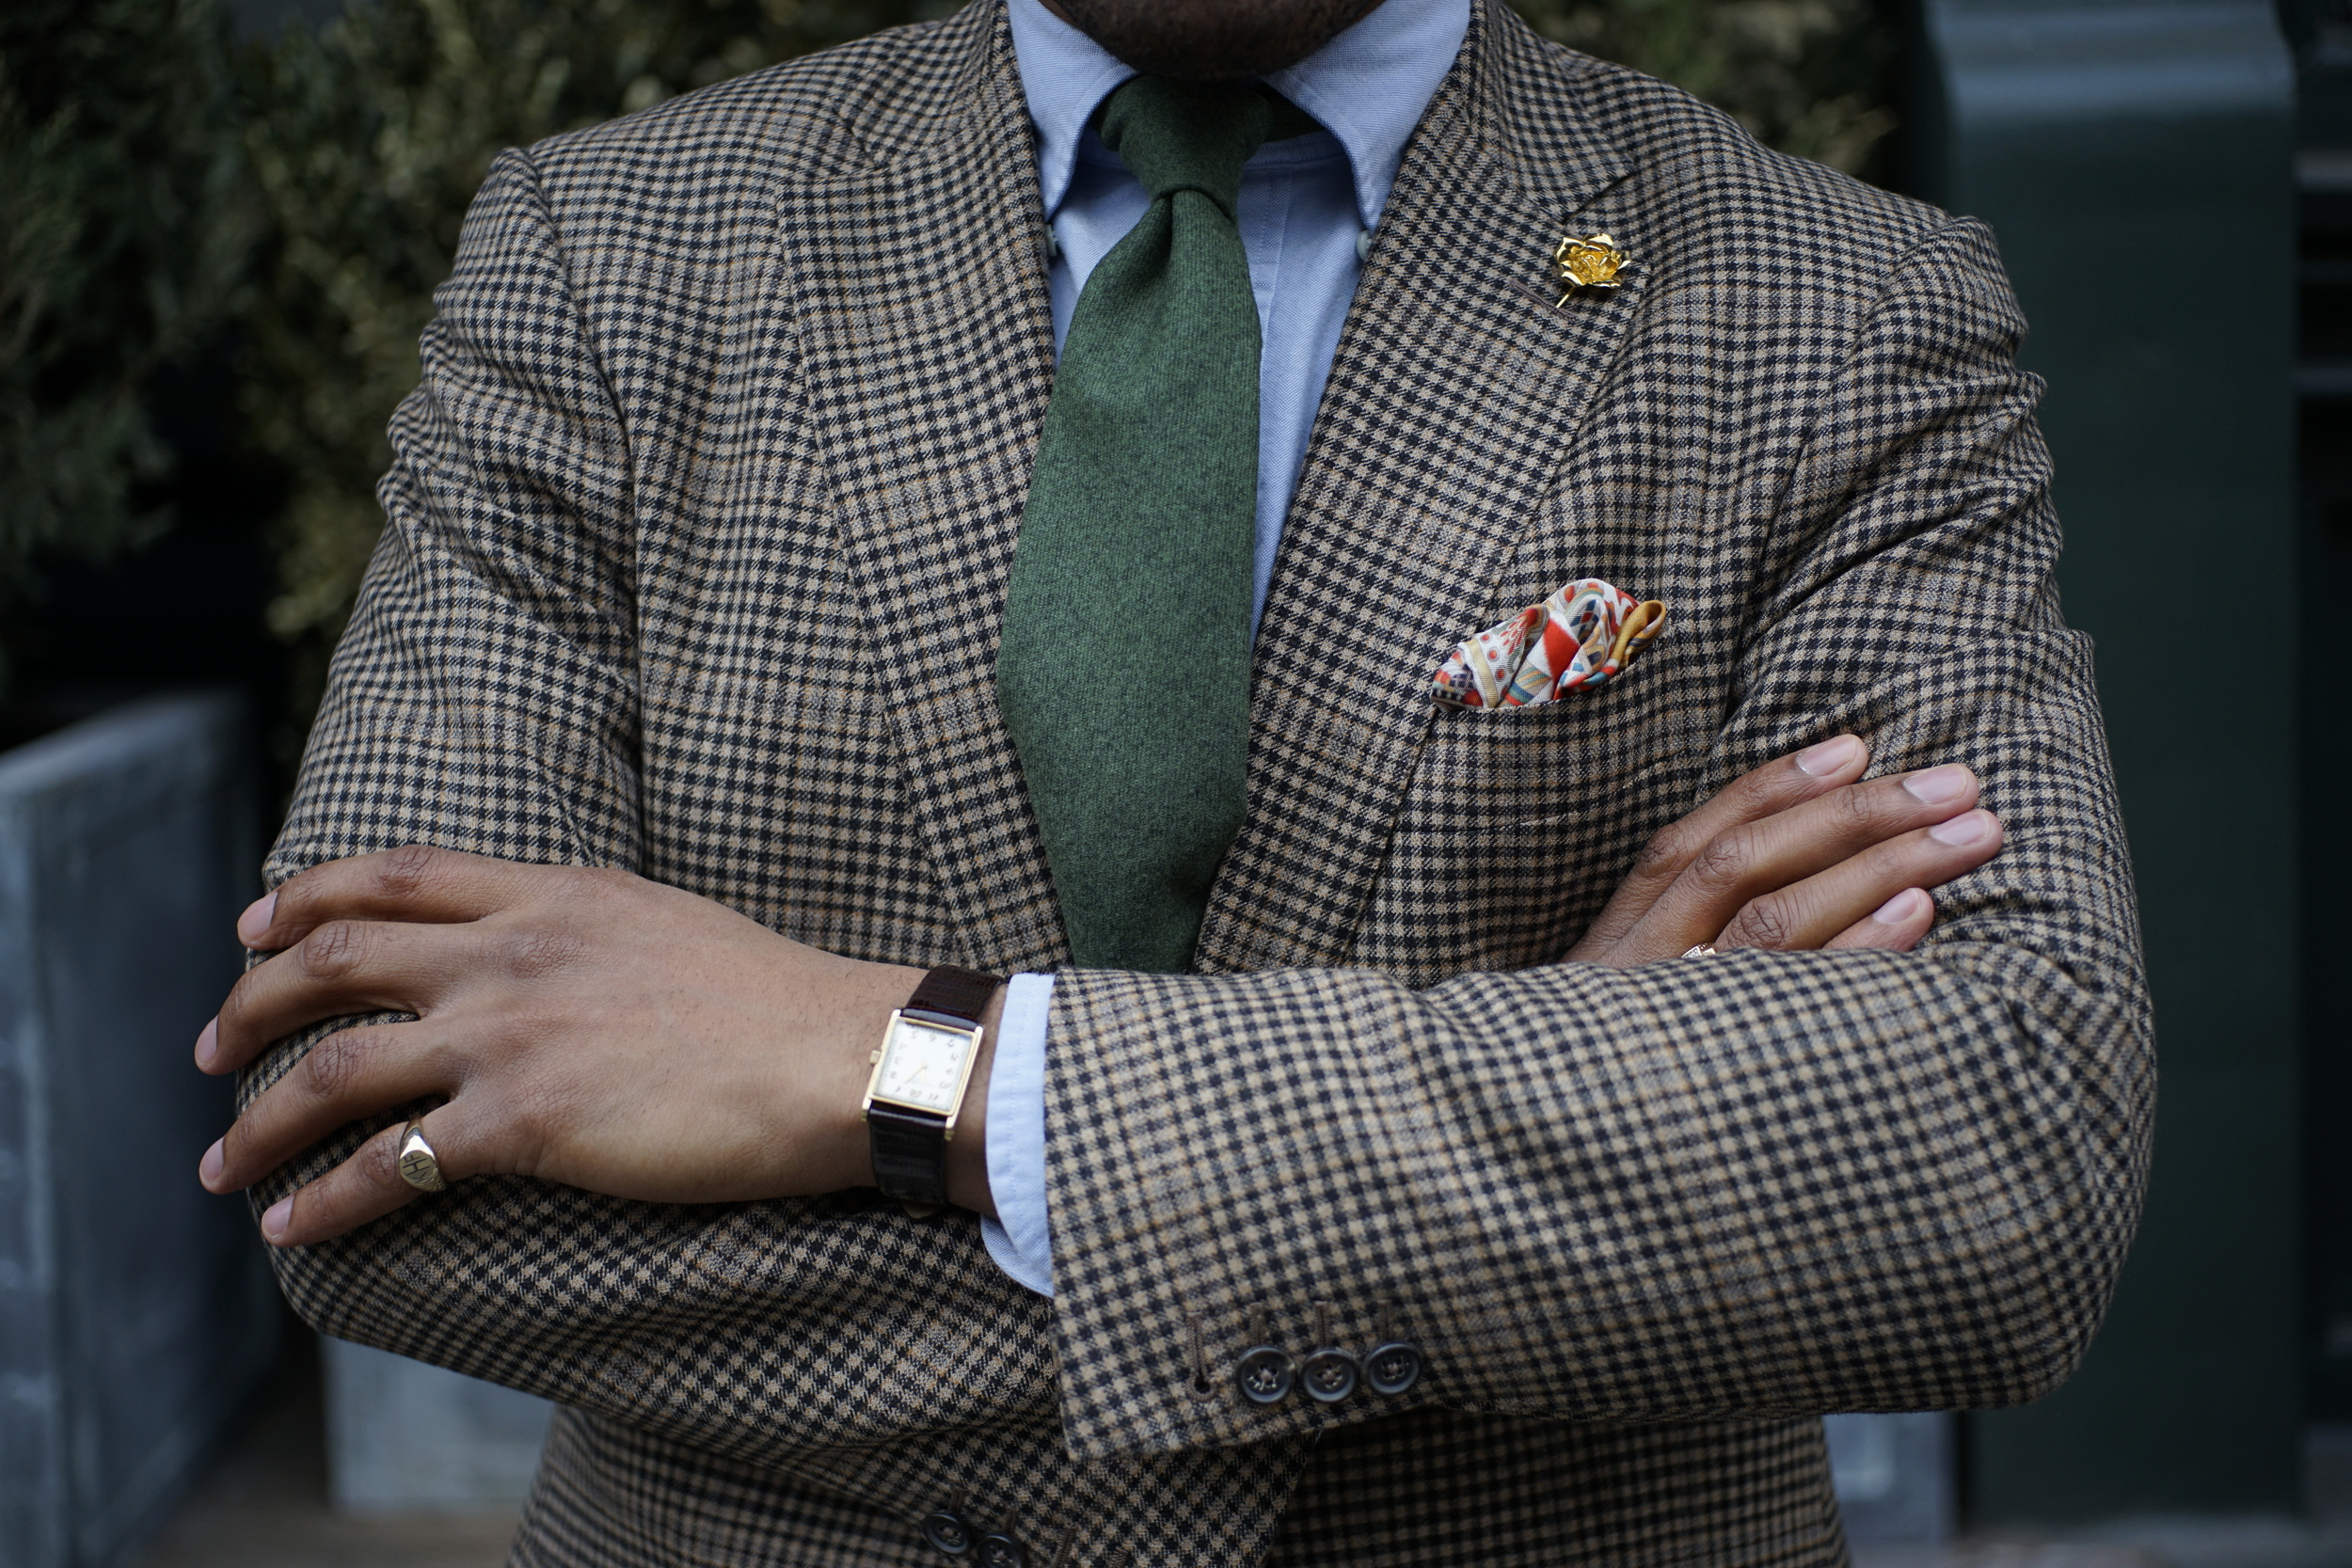 Coat by Isaia, shirt by Kamakura Shirts, Tie by Josiah France, pocket square by Kent Wang lapel pin by By Elias,